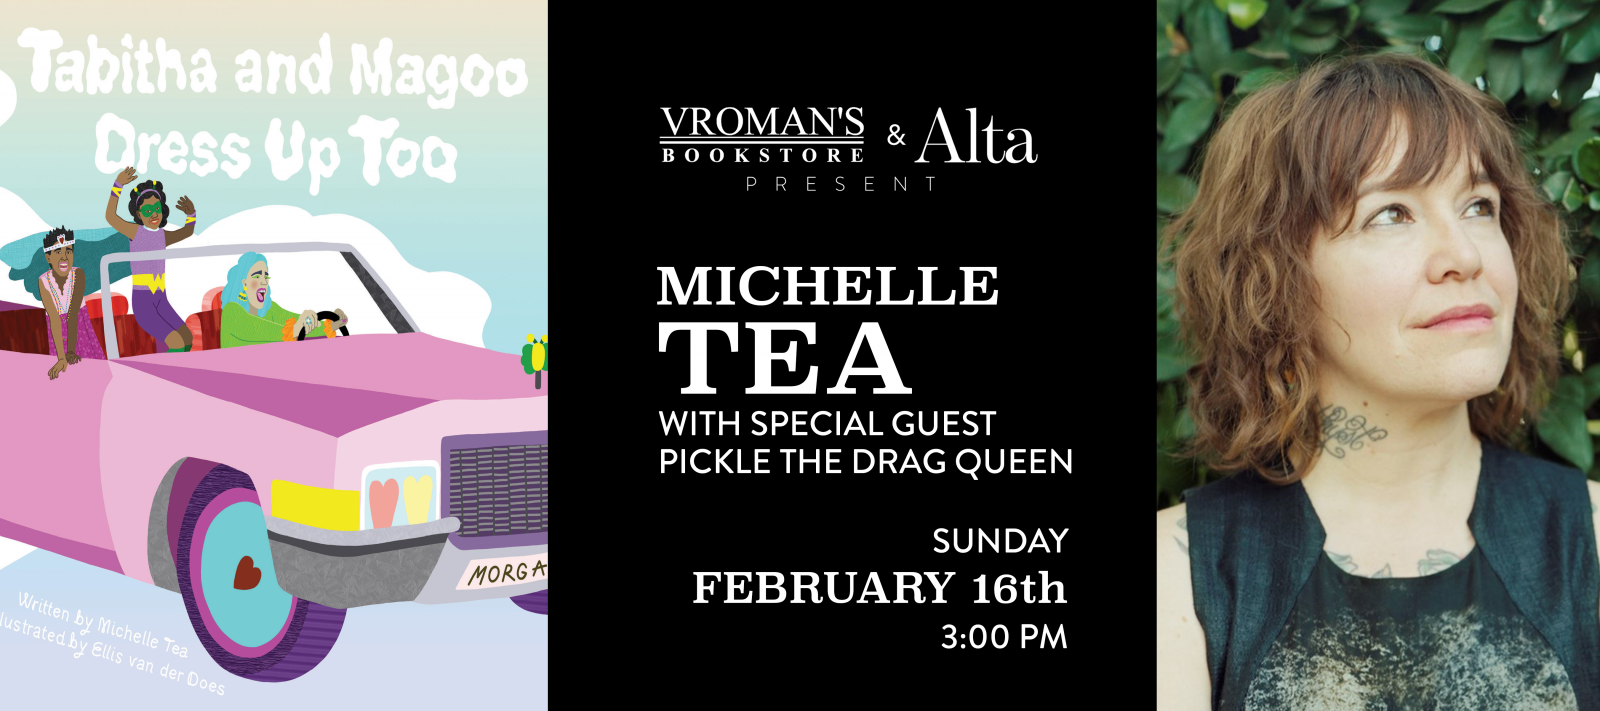 Michelle Tea book signing on Sunday, February 16, at 3pm